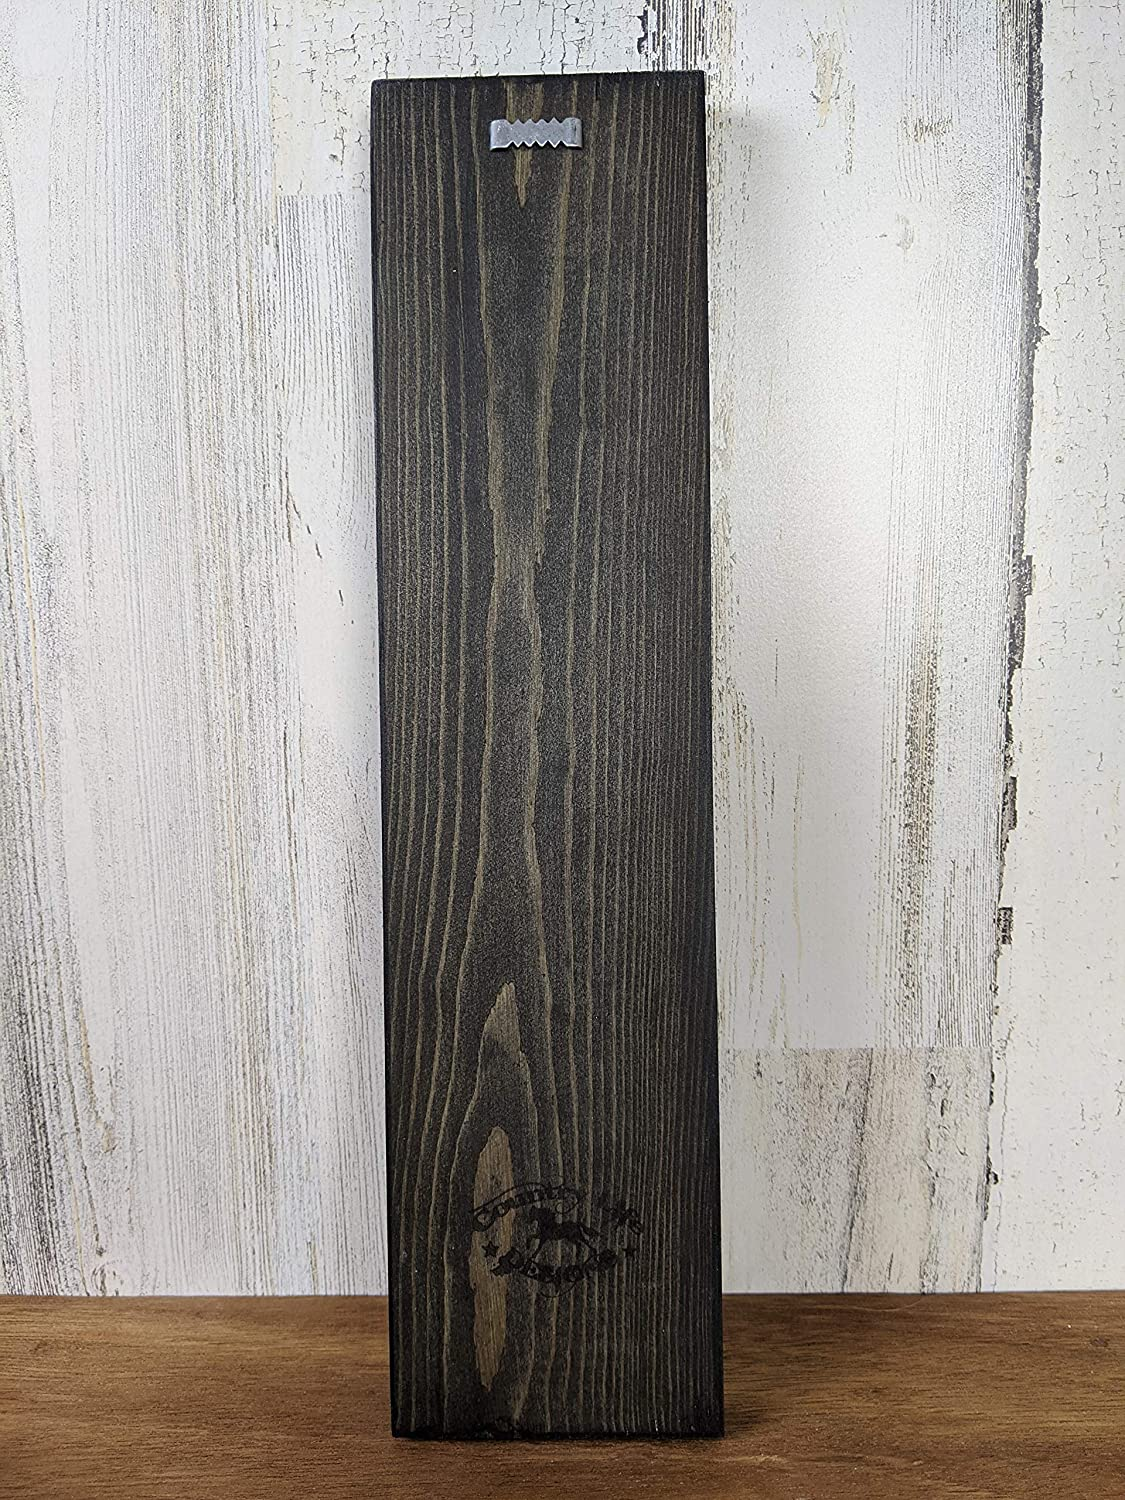 Farmhouse Decor Rustic Bathroom Handmade Wood Wall Hanging Vertical Get Naked Sign